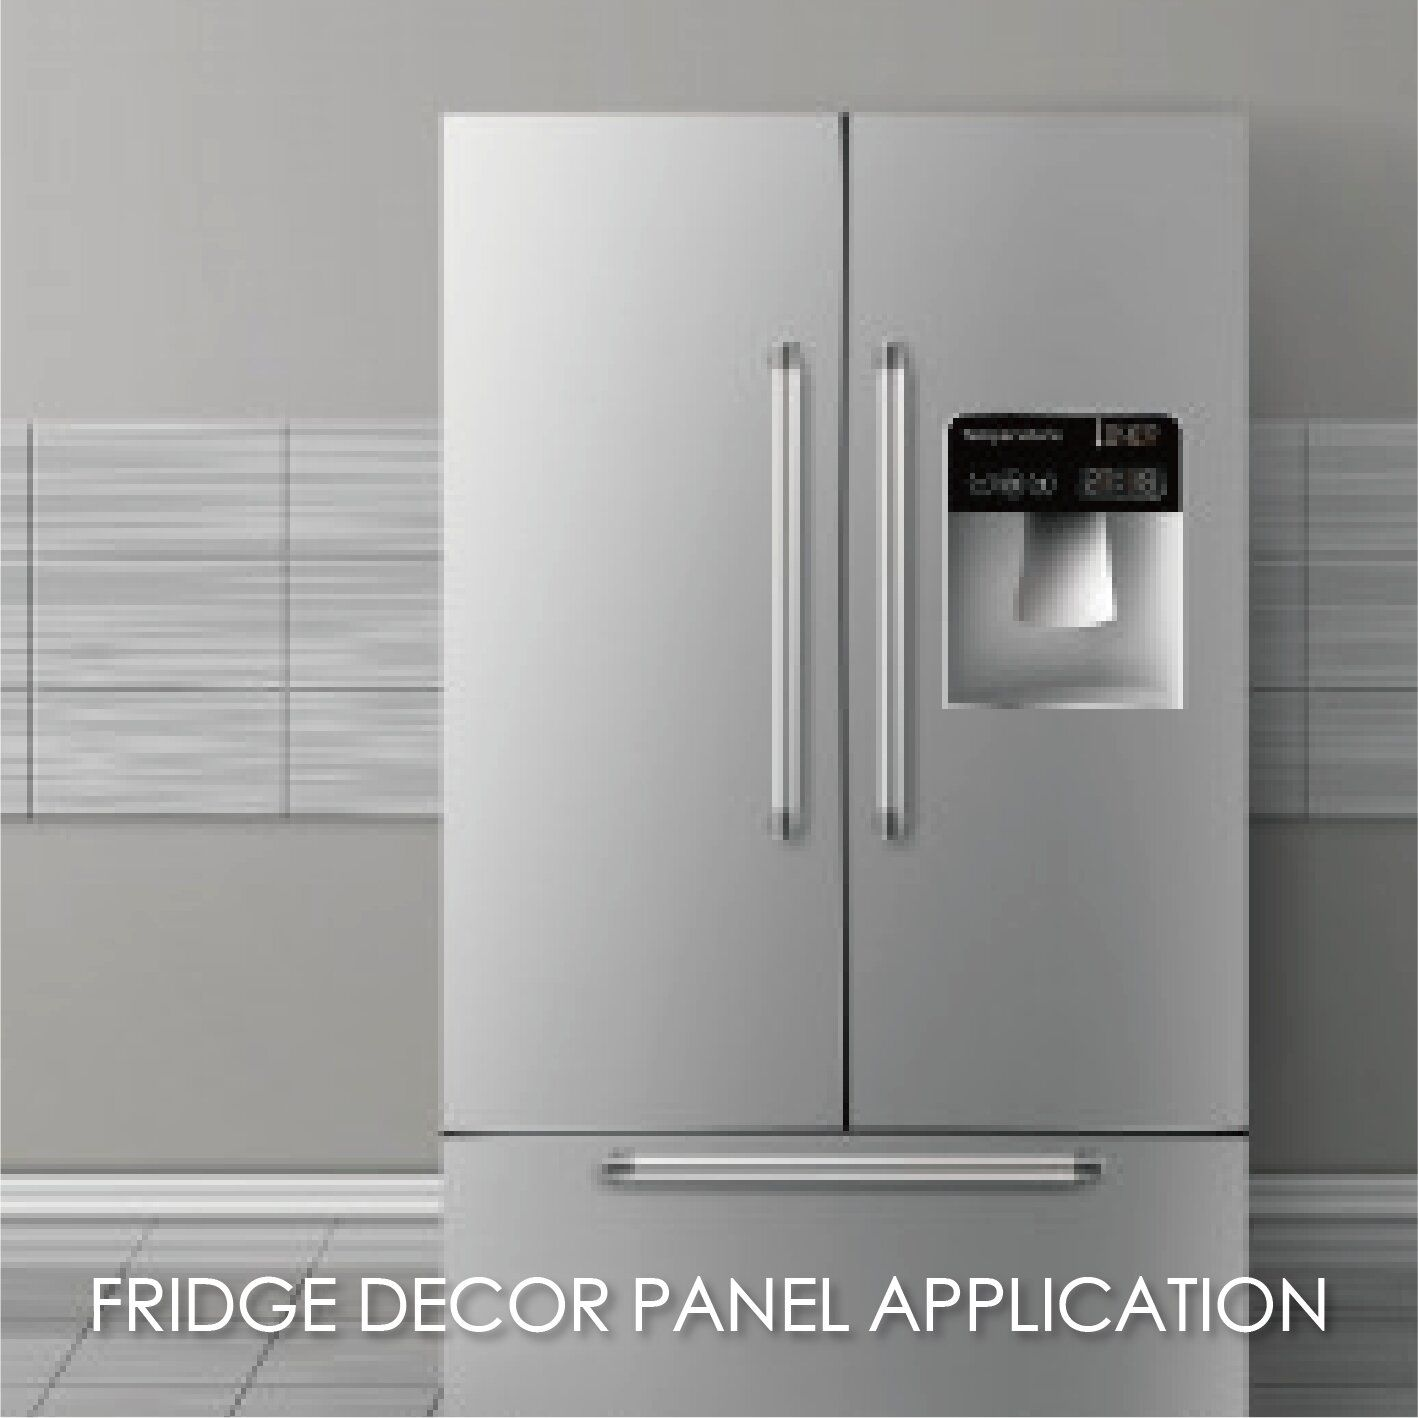 Find a proper solution for your refrigerator